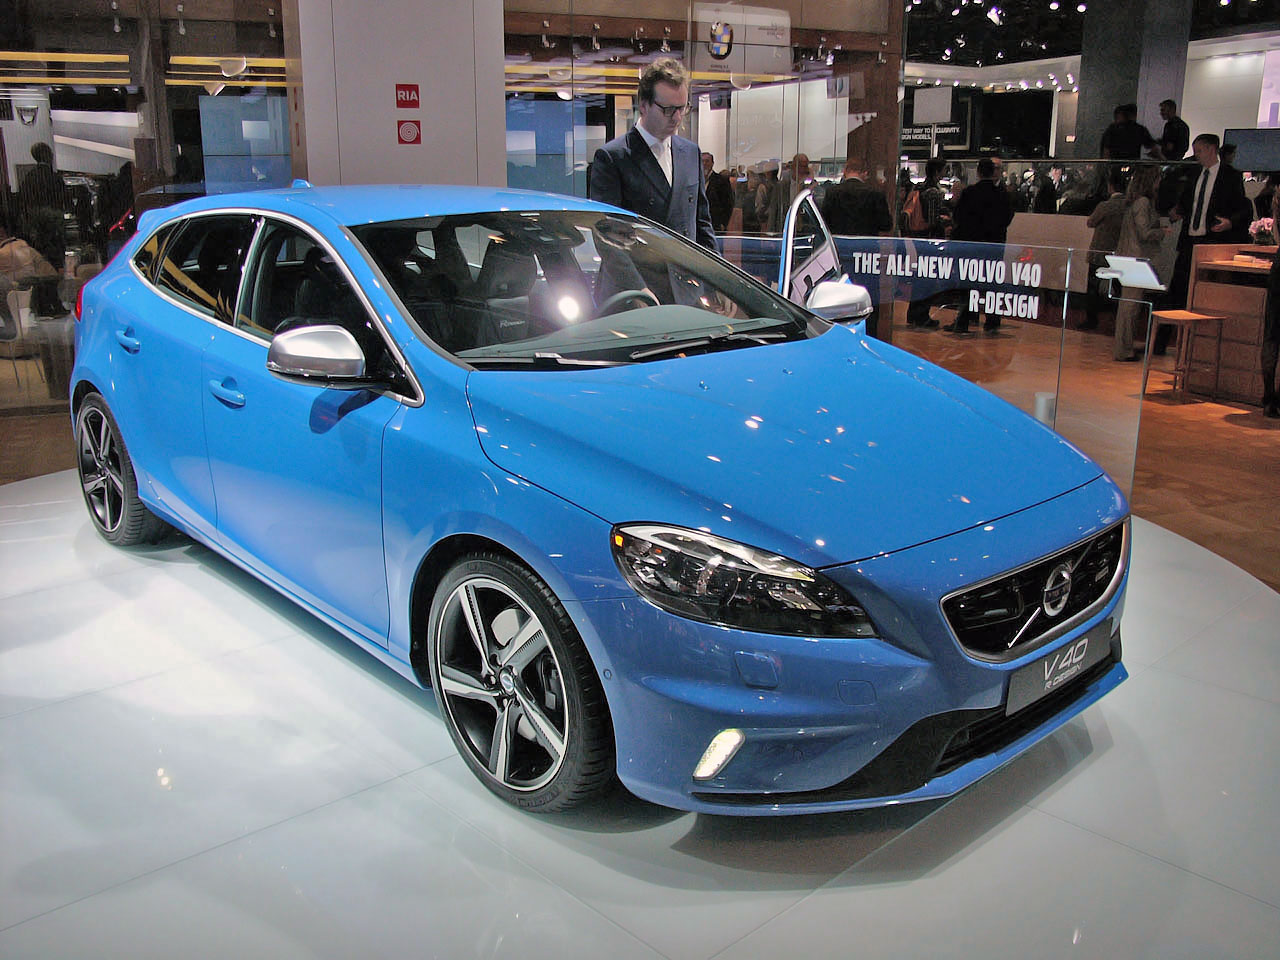 2013 volvo v40 r design leaves us feeling blue in paris autoblog. Black Bedroom Furniture Sets. Home Design Ideas